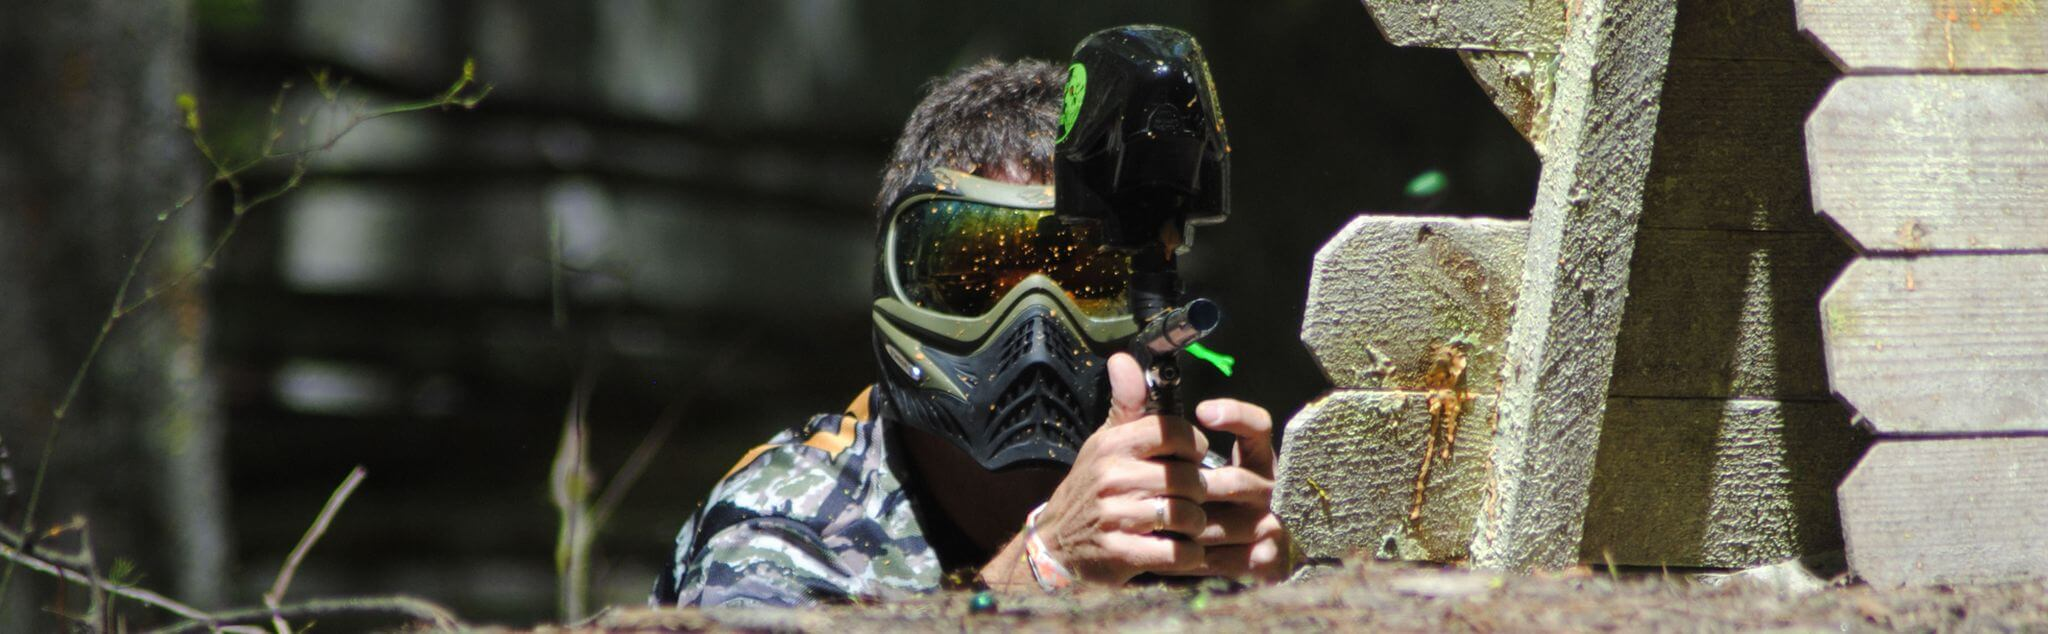 Paintball a Mareno di Piave